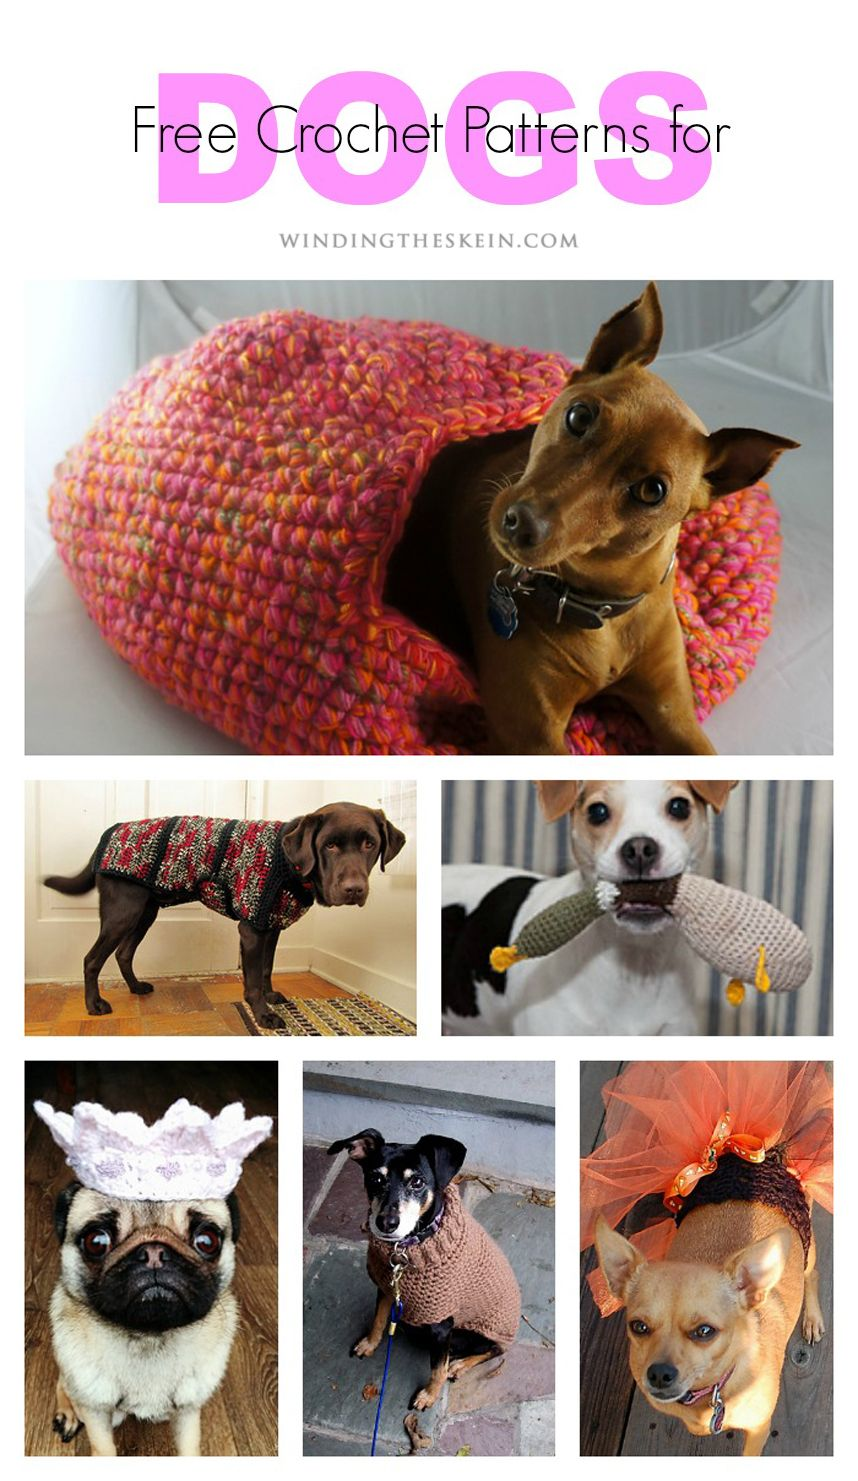 23 Free Crochet Patterns for Household Pets - Winding the Skein ...